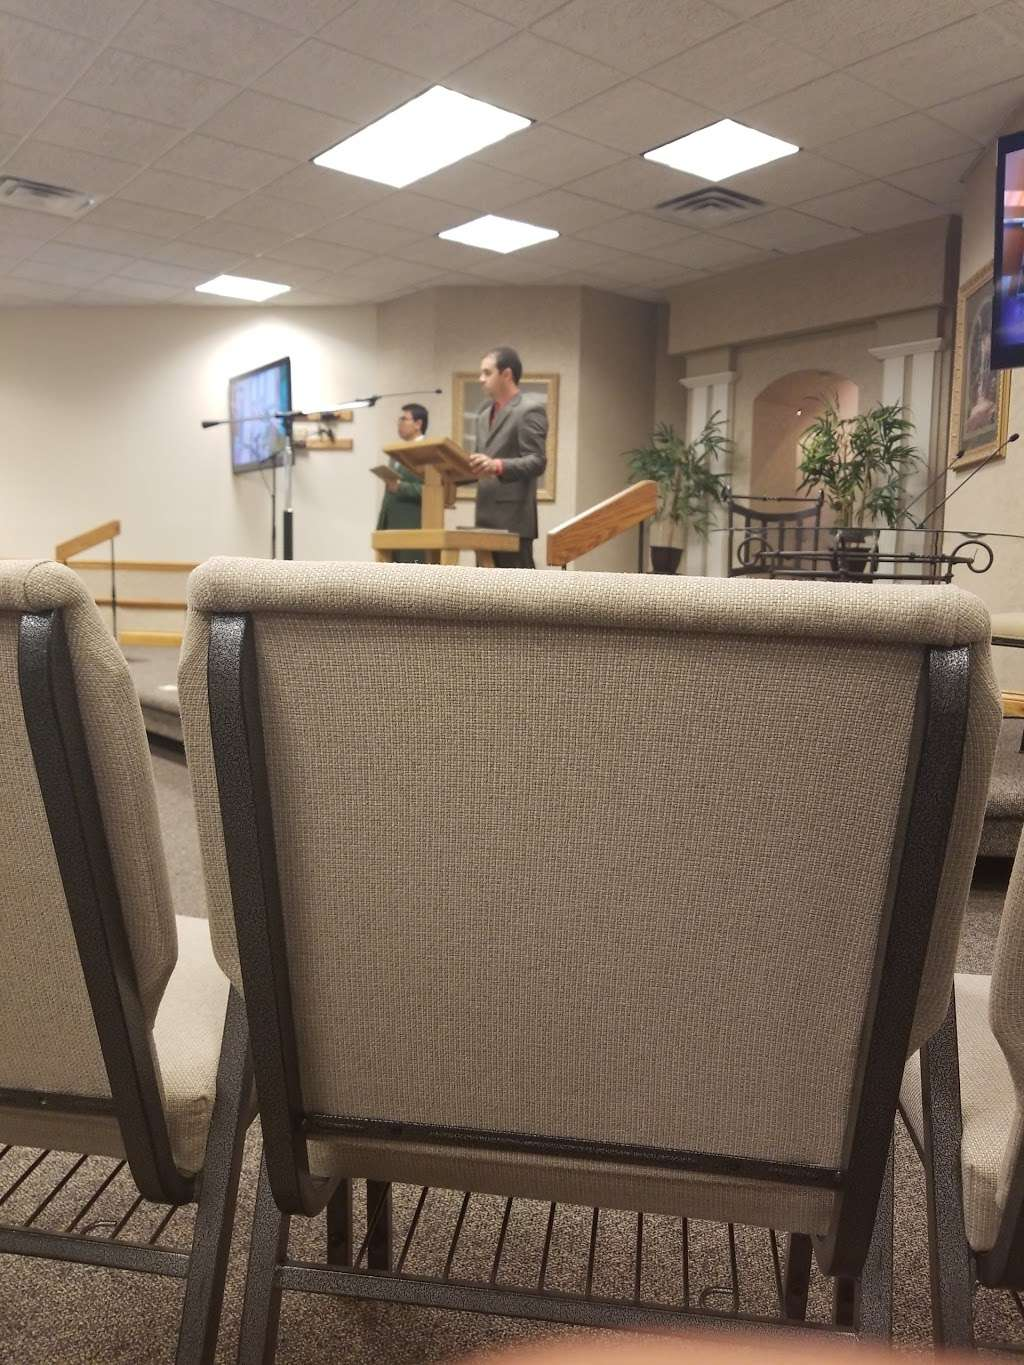 Kingdom Hall of Jehovahs Witnesses - church    Photo 3 of 5   Address: 5667 Moller Rd, Indianapolis, IN 46254, USA   Phone: (317) 789-8981